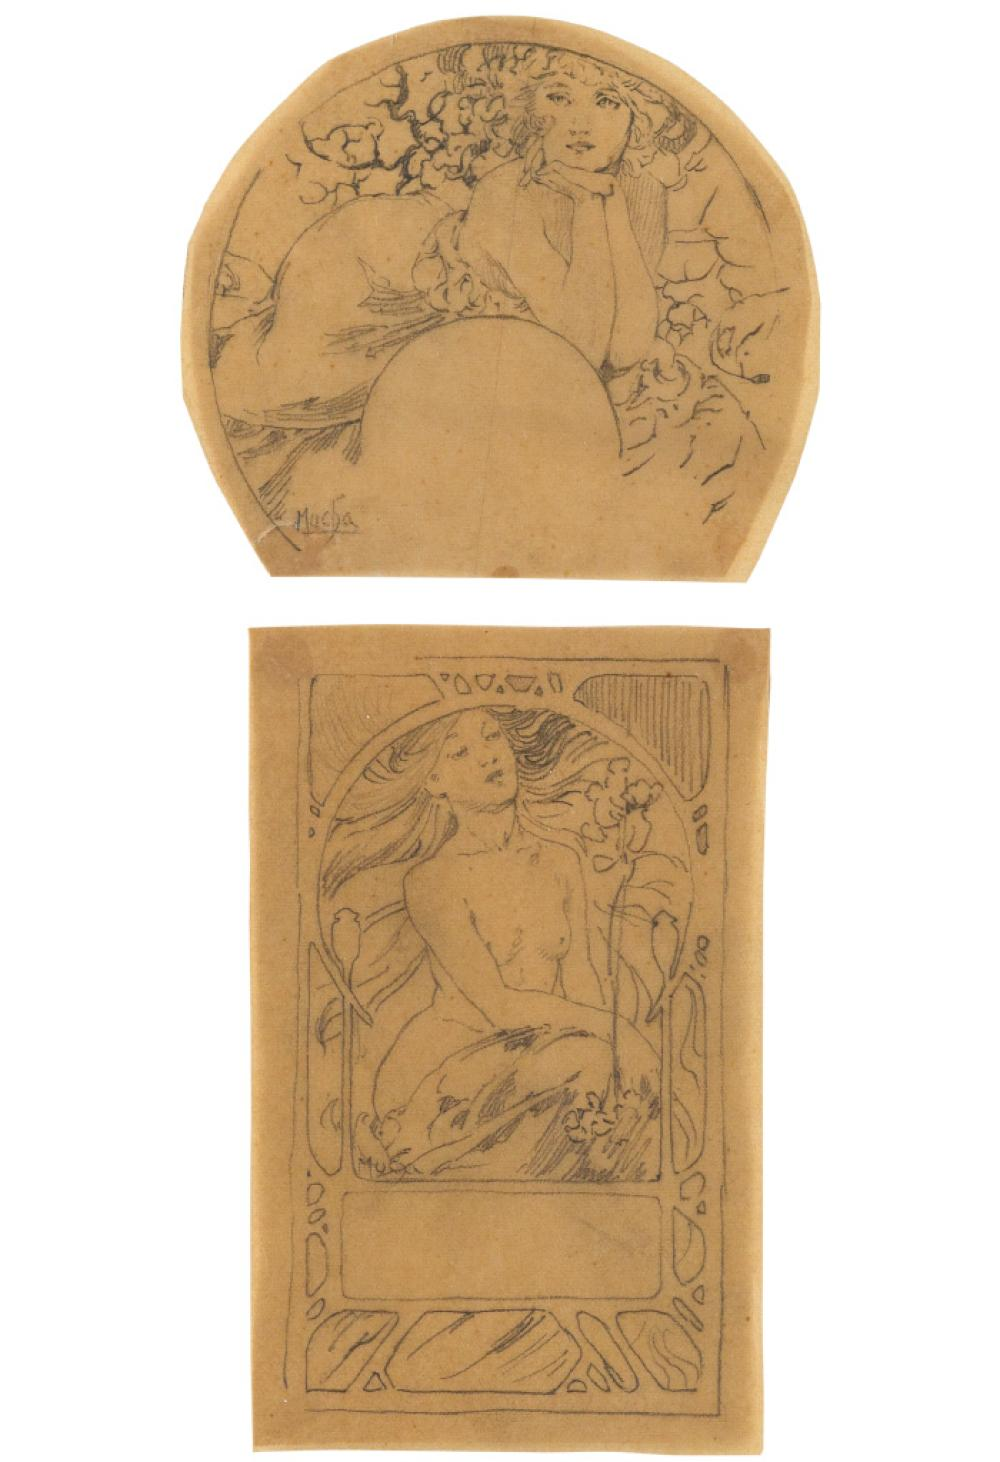 ALPHONSE MUCHA (1860-1939). [DOCUMENTS DÉCORATIFS.] Two preparatory pencil sketches. Circa 1902. Approximately 4x4 inches, 10x11 cm, an